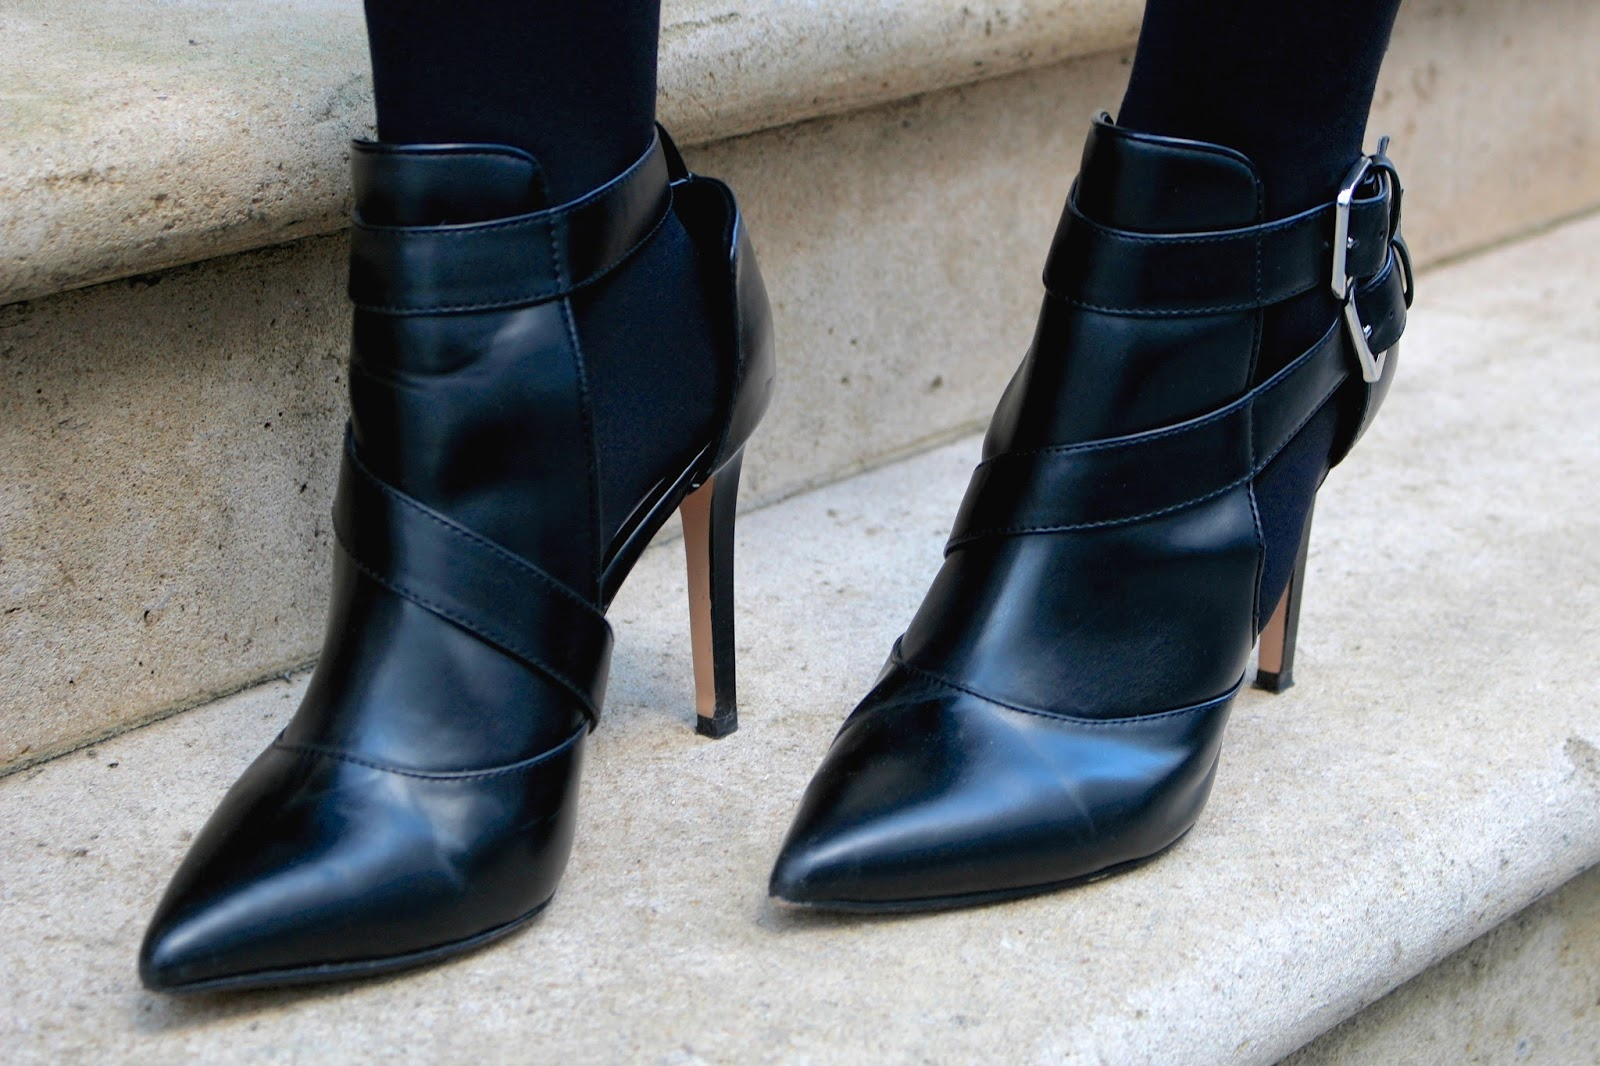 zara pointed cut out boots